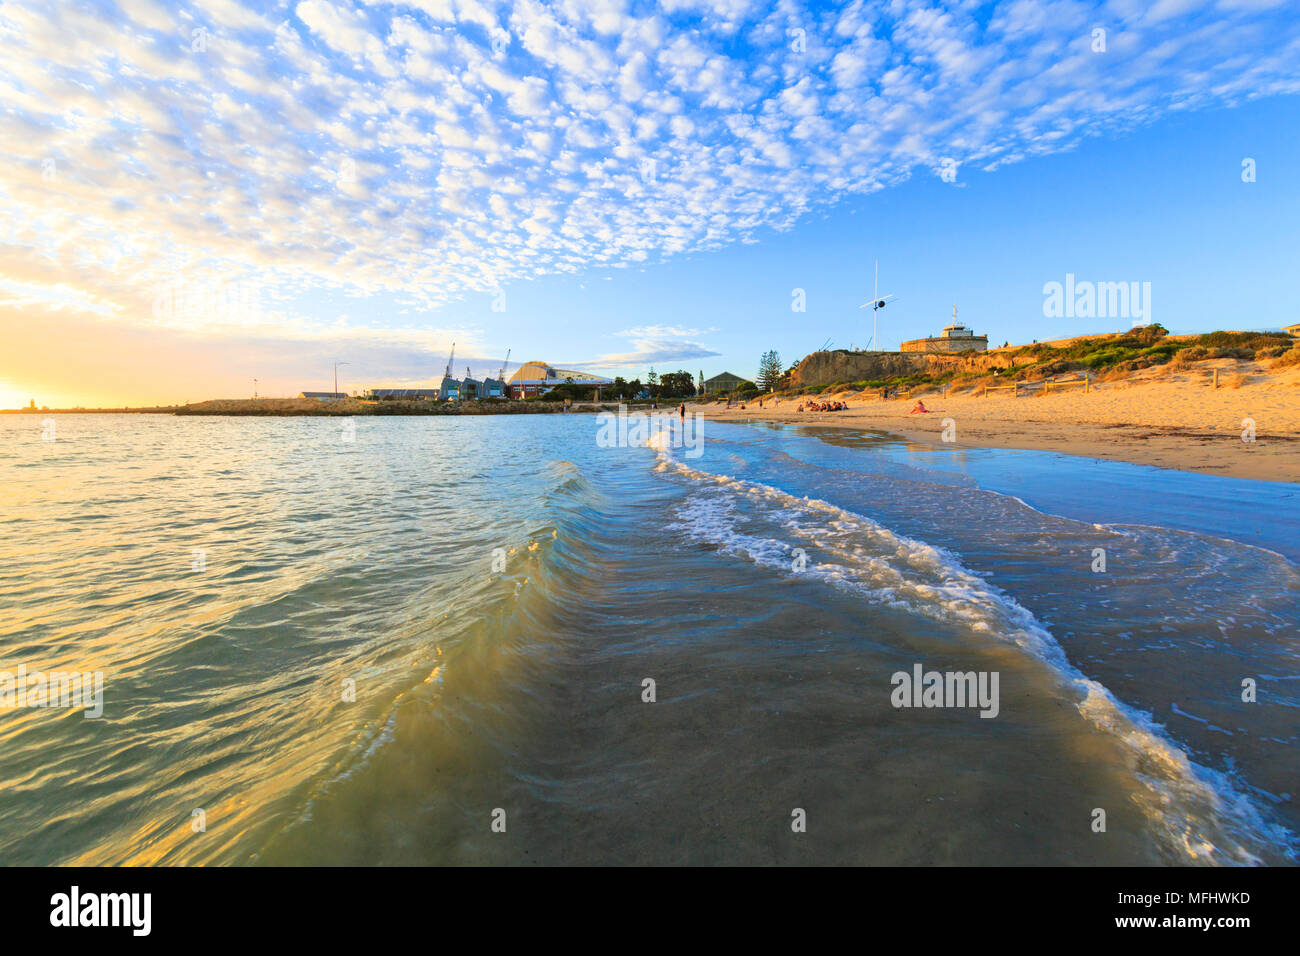 Bathers Beach, Fremantle. With the Roundhouse and WA Maritime Museum. - Stock Image